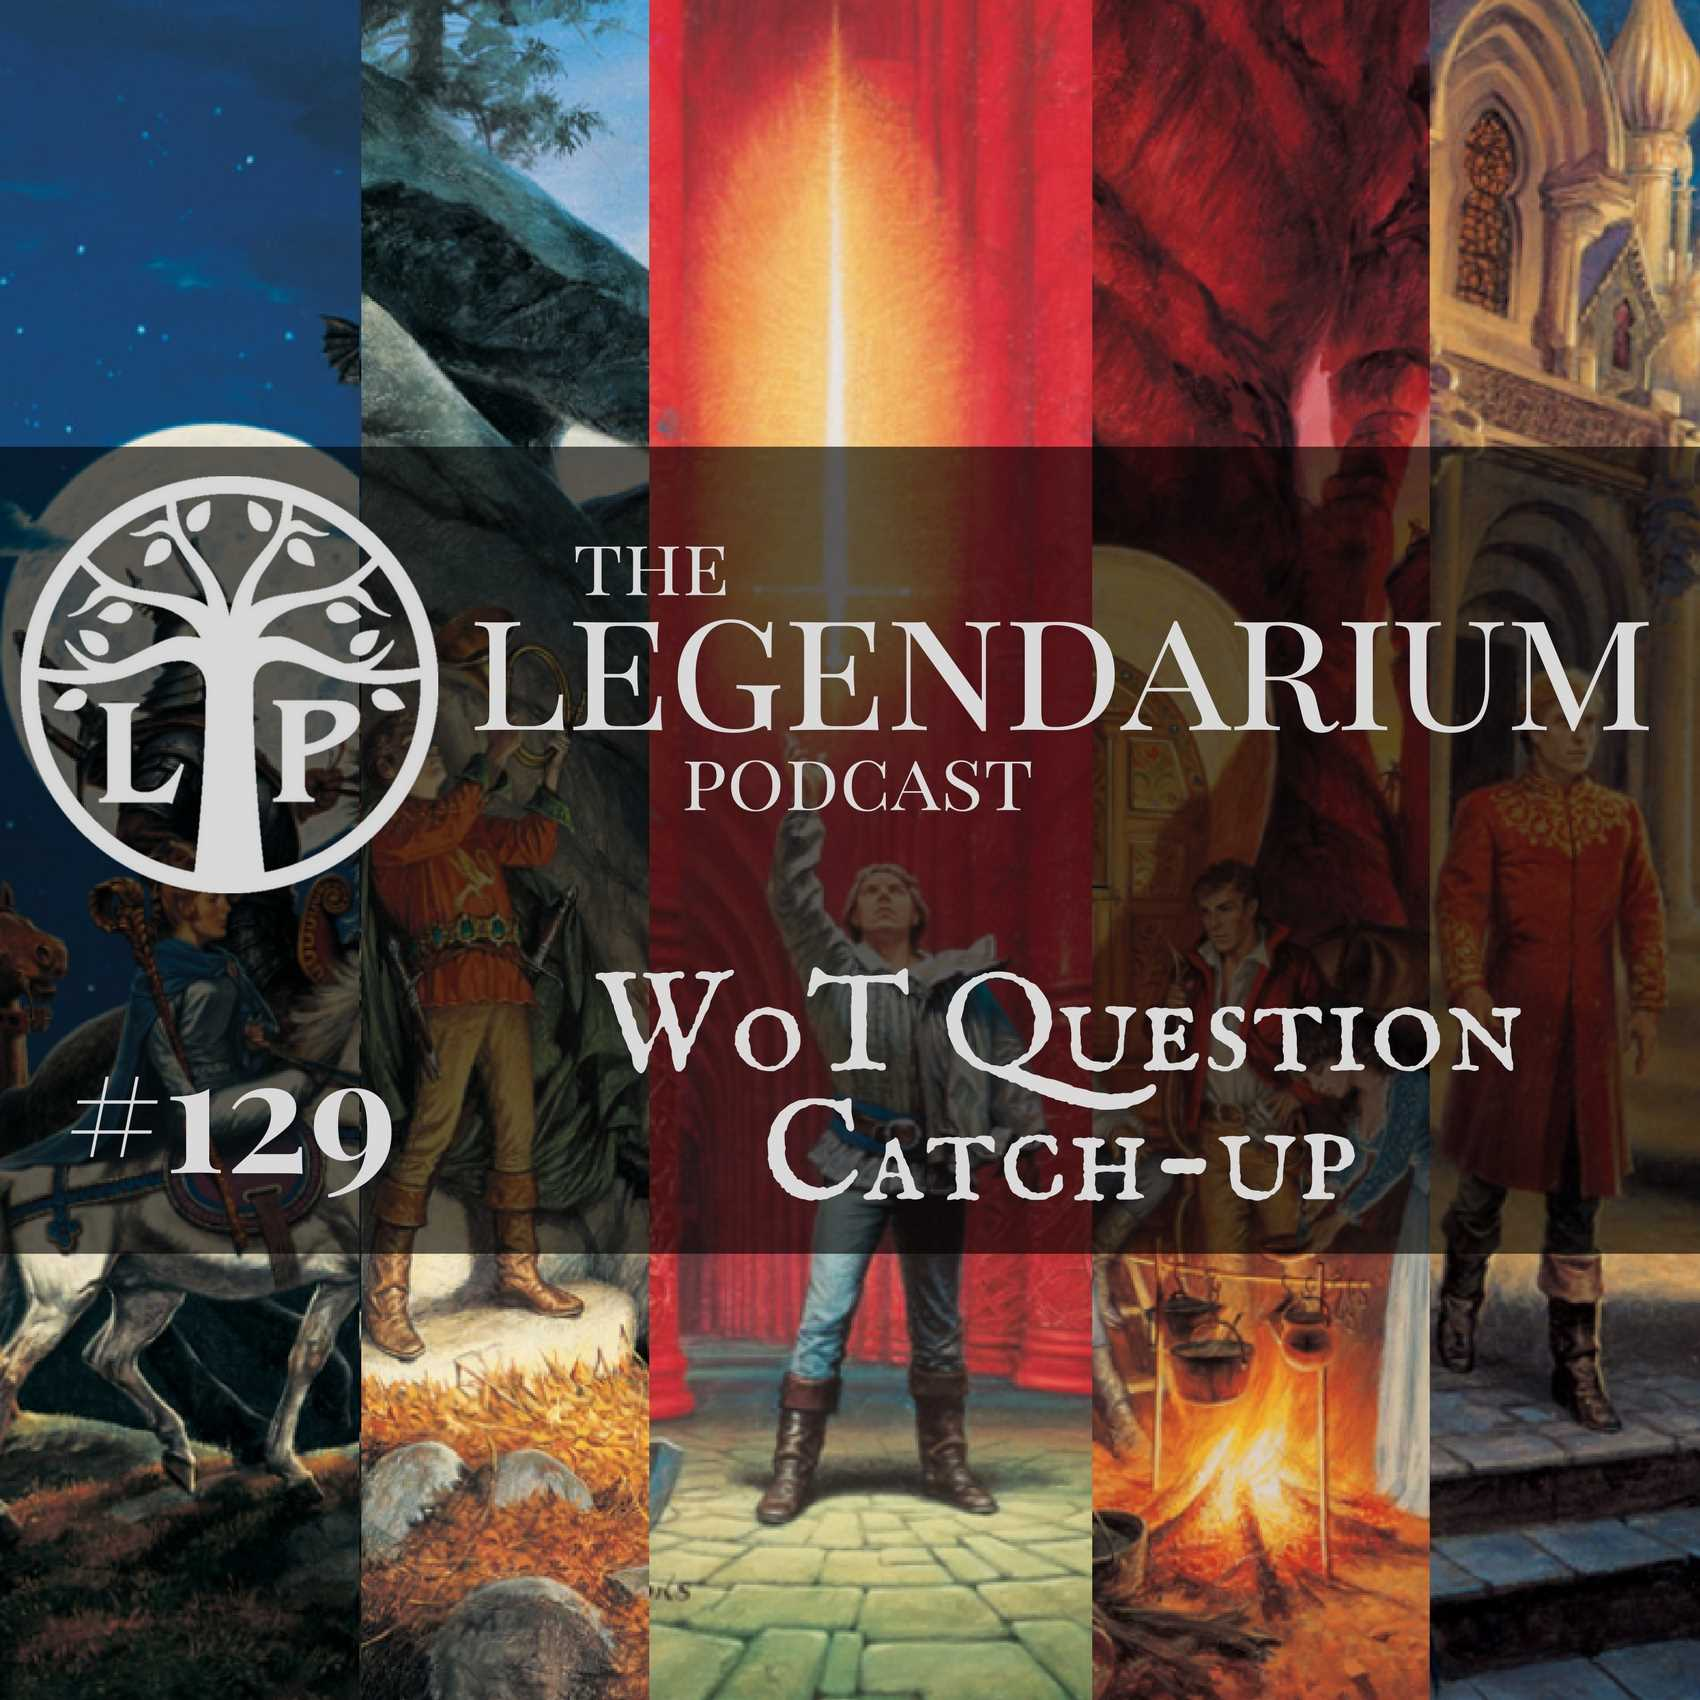 #129. WoT Question Catch-up